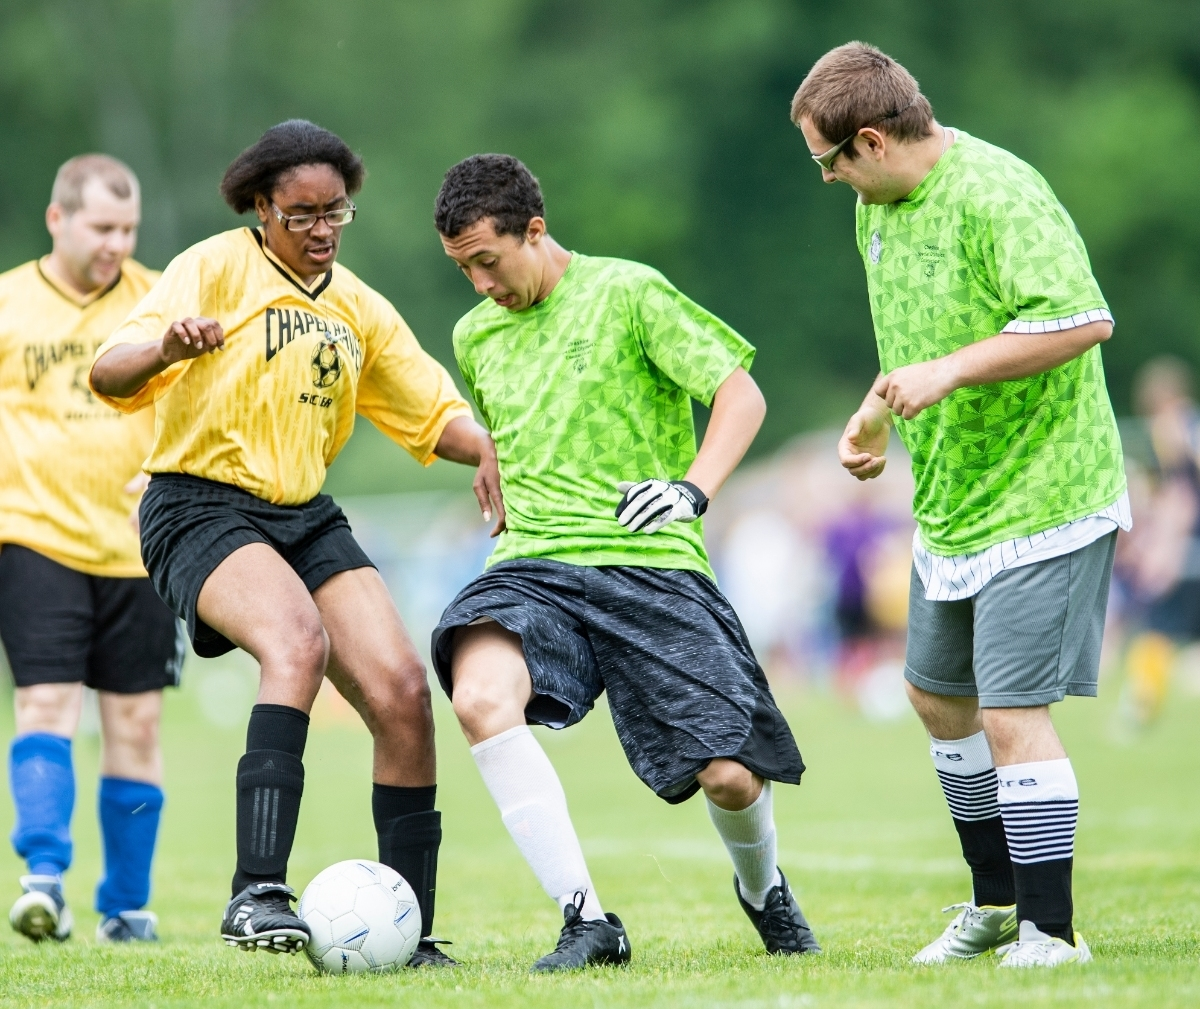 Special Olympics Connecticut to Host Annual Summer Games June 7-9